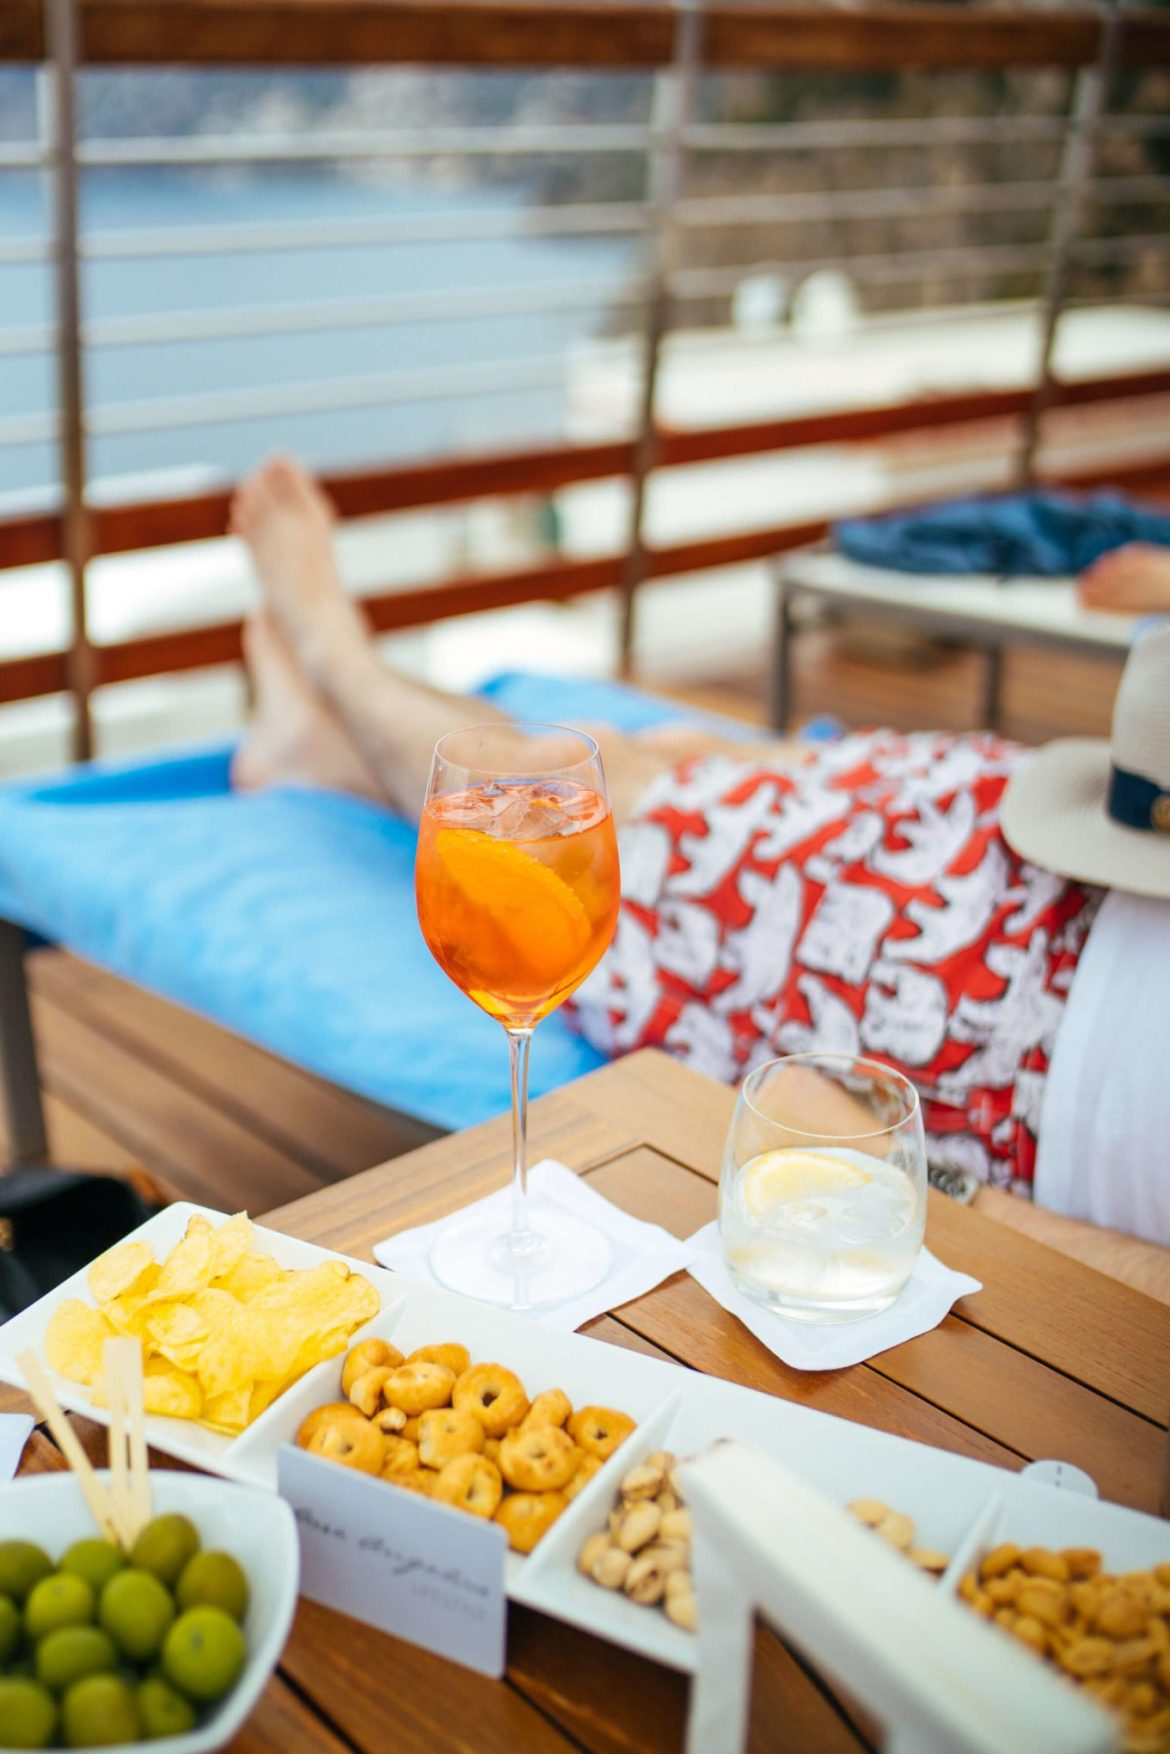 Aperol spritz by the pool at Casa Angelina Lifestyle Hotel in Praiano Italy, The Taste Edit